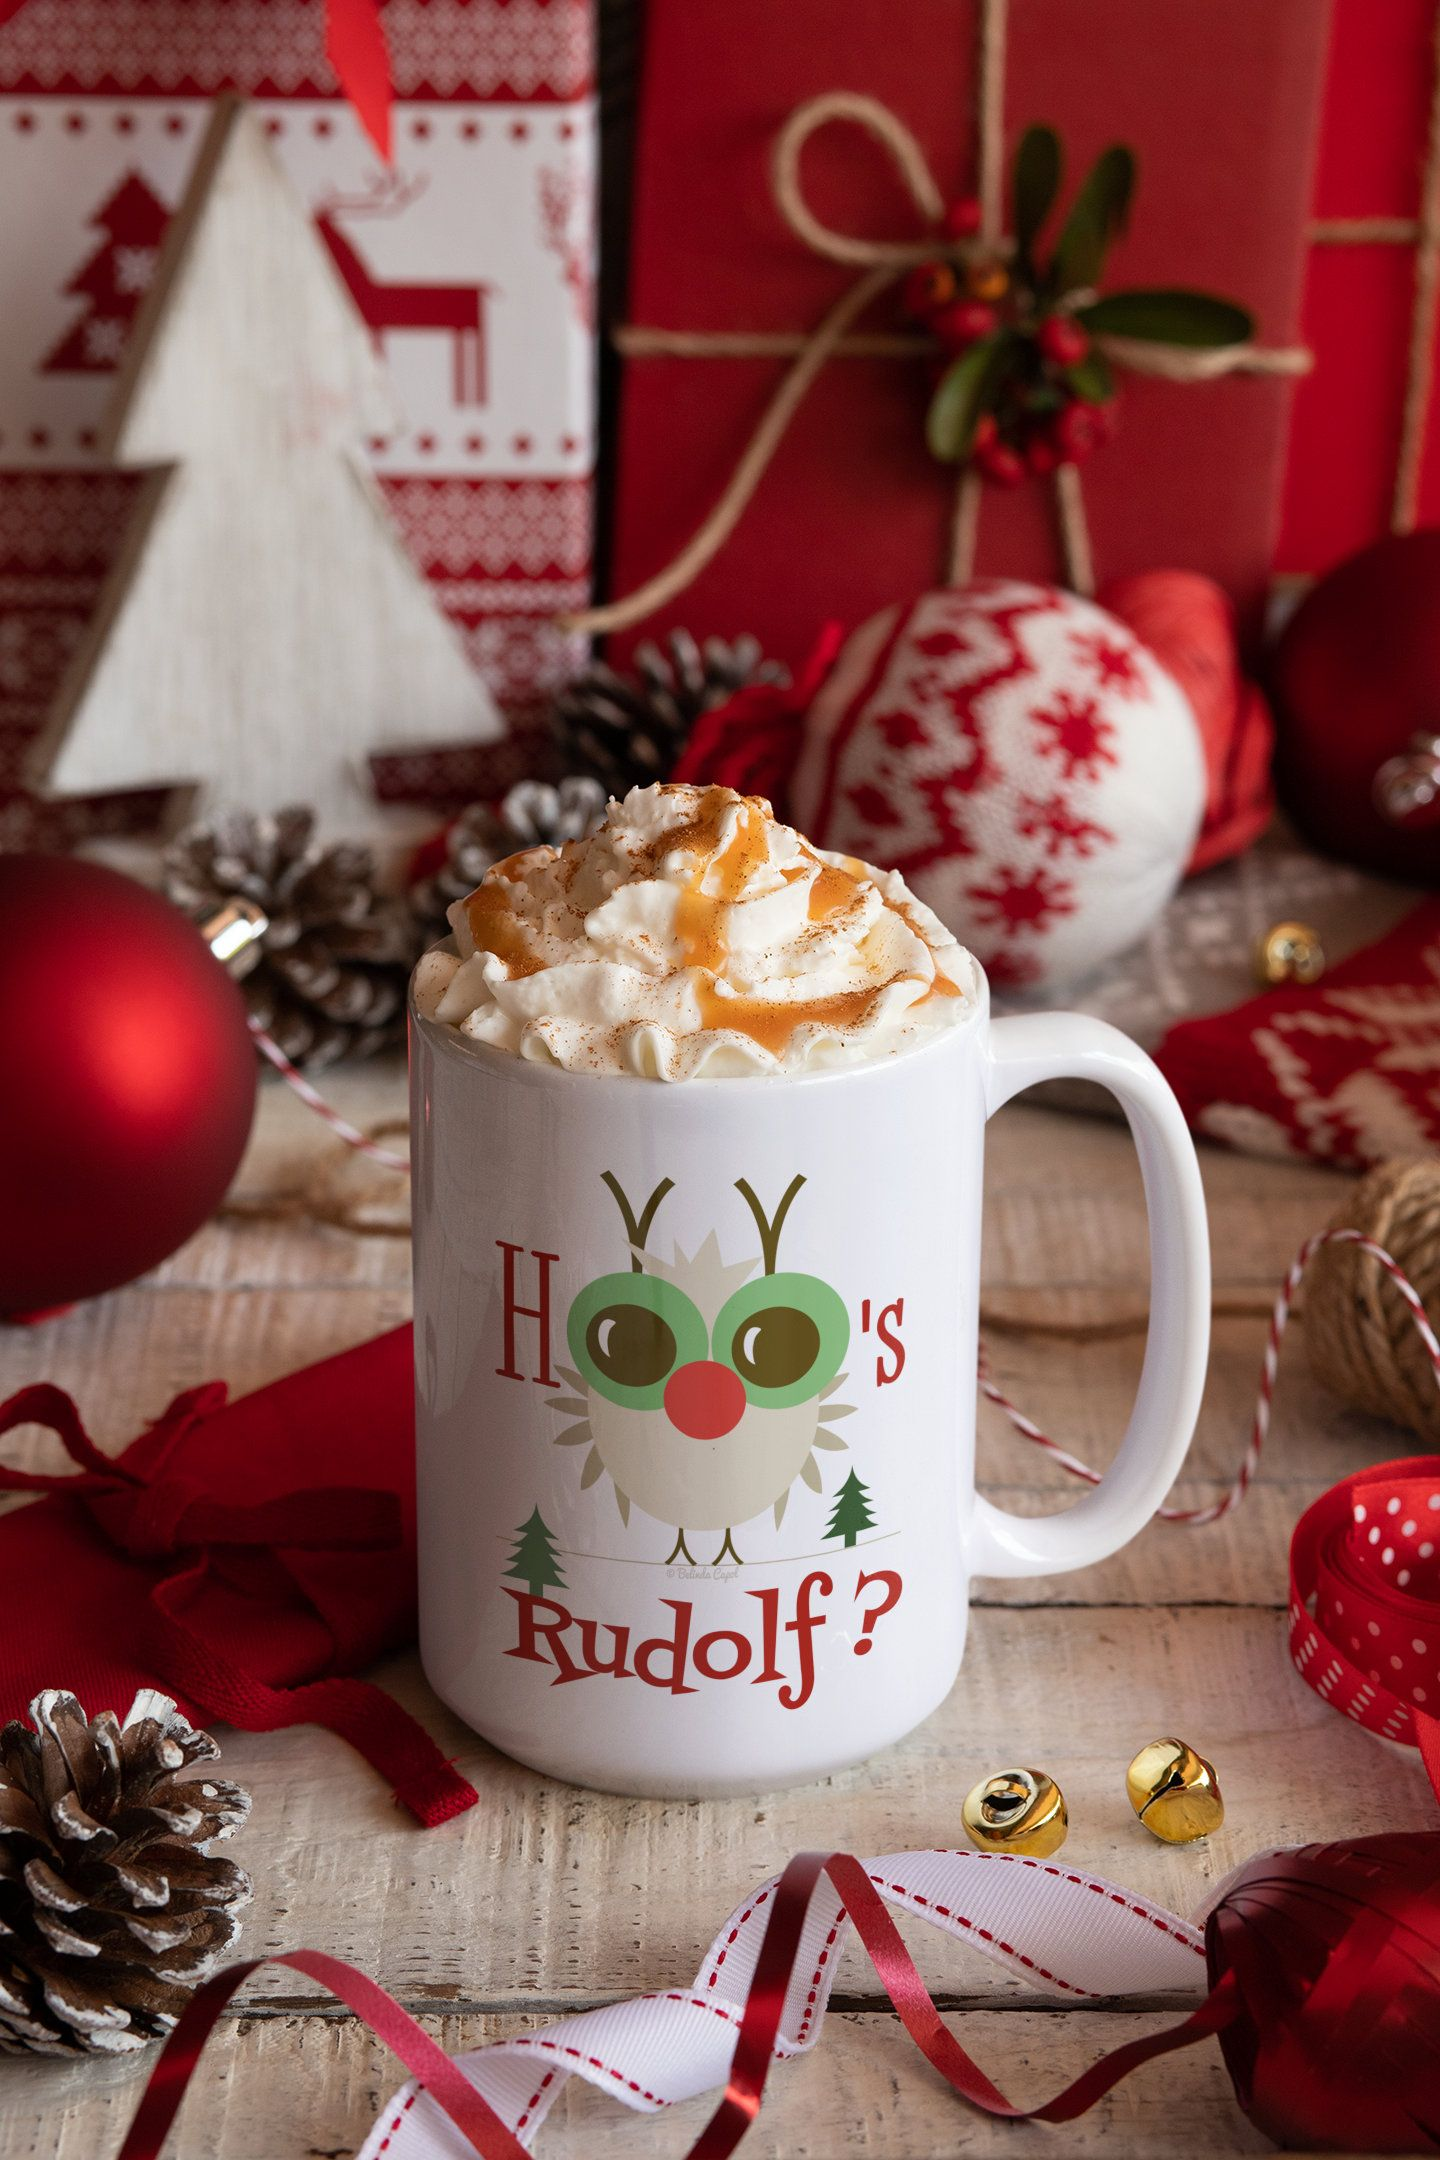 Christmas Mug Rudolf The Red Nosed Owl Funny Mugs Xmas Party Gifts Cute Cups Ideas Decorations For Parties Kitchen Decor Holder Tea Cup Gifts Funny Coffee Cups Mugs